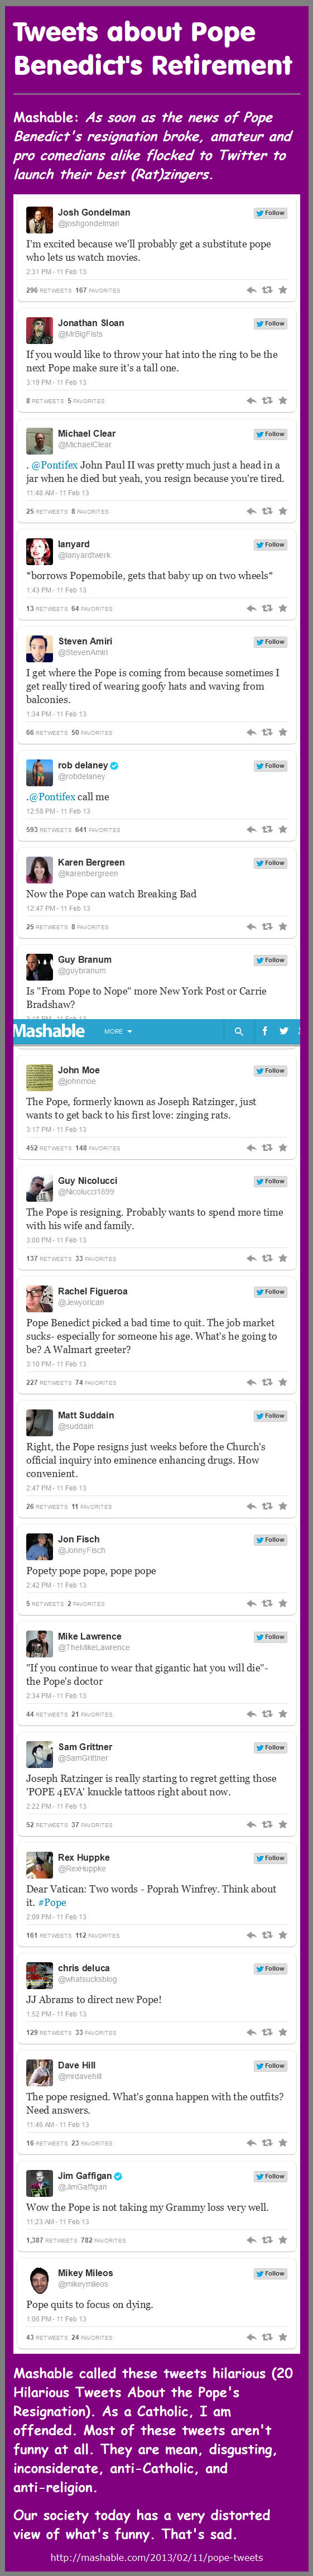 Tweets about Pope Benedict's Retirement